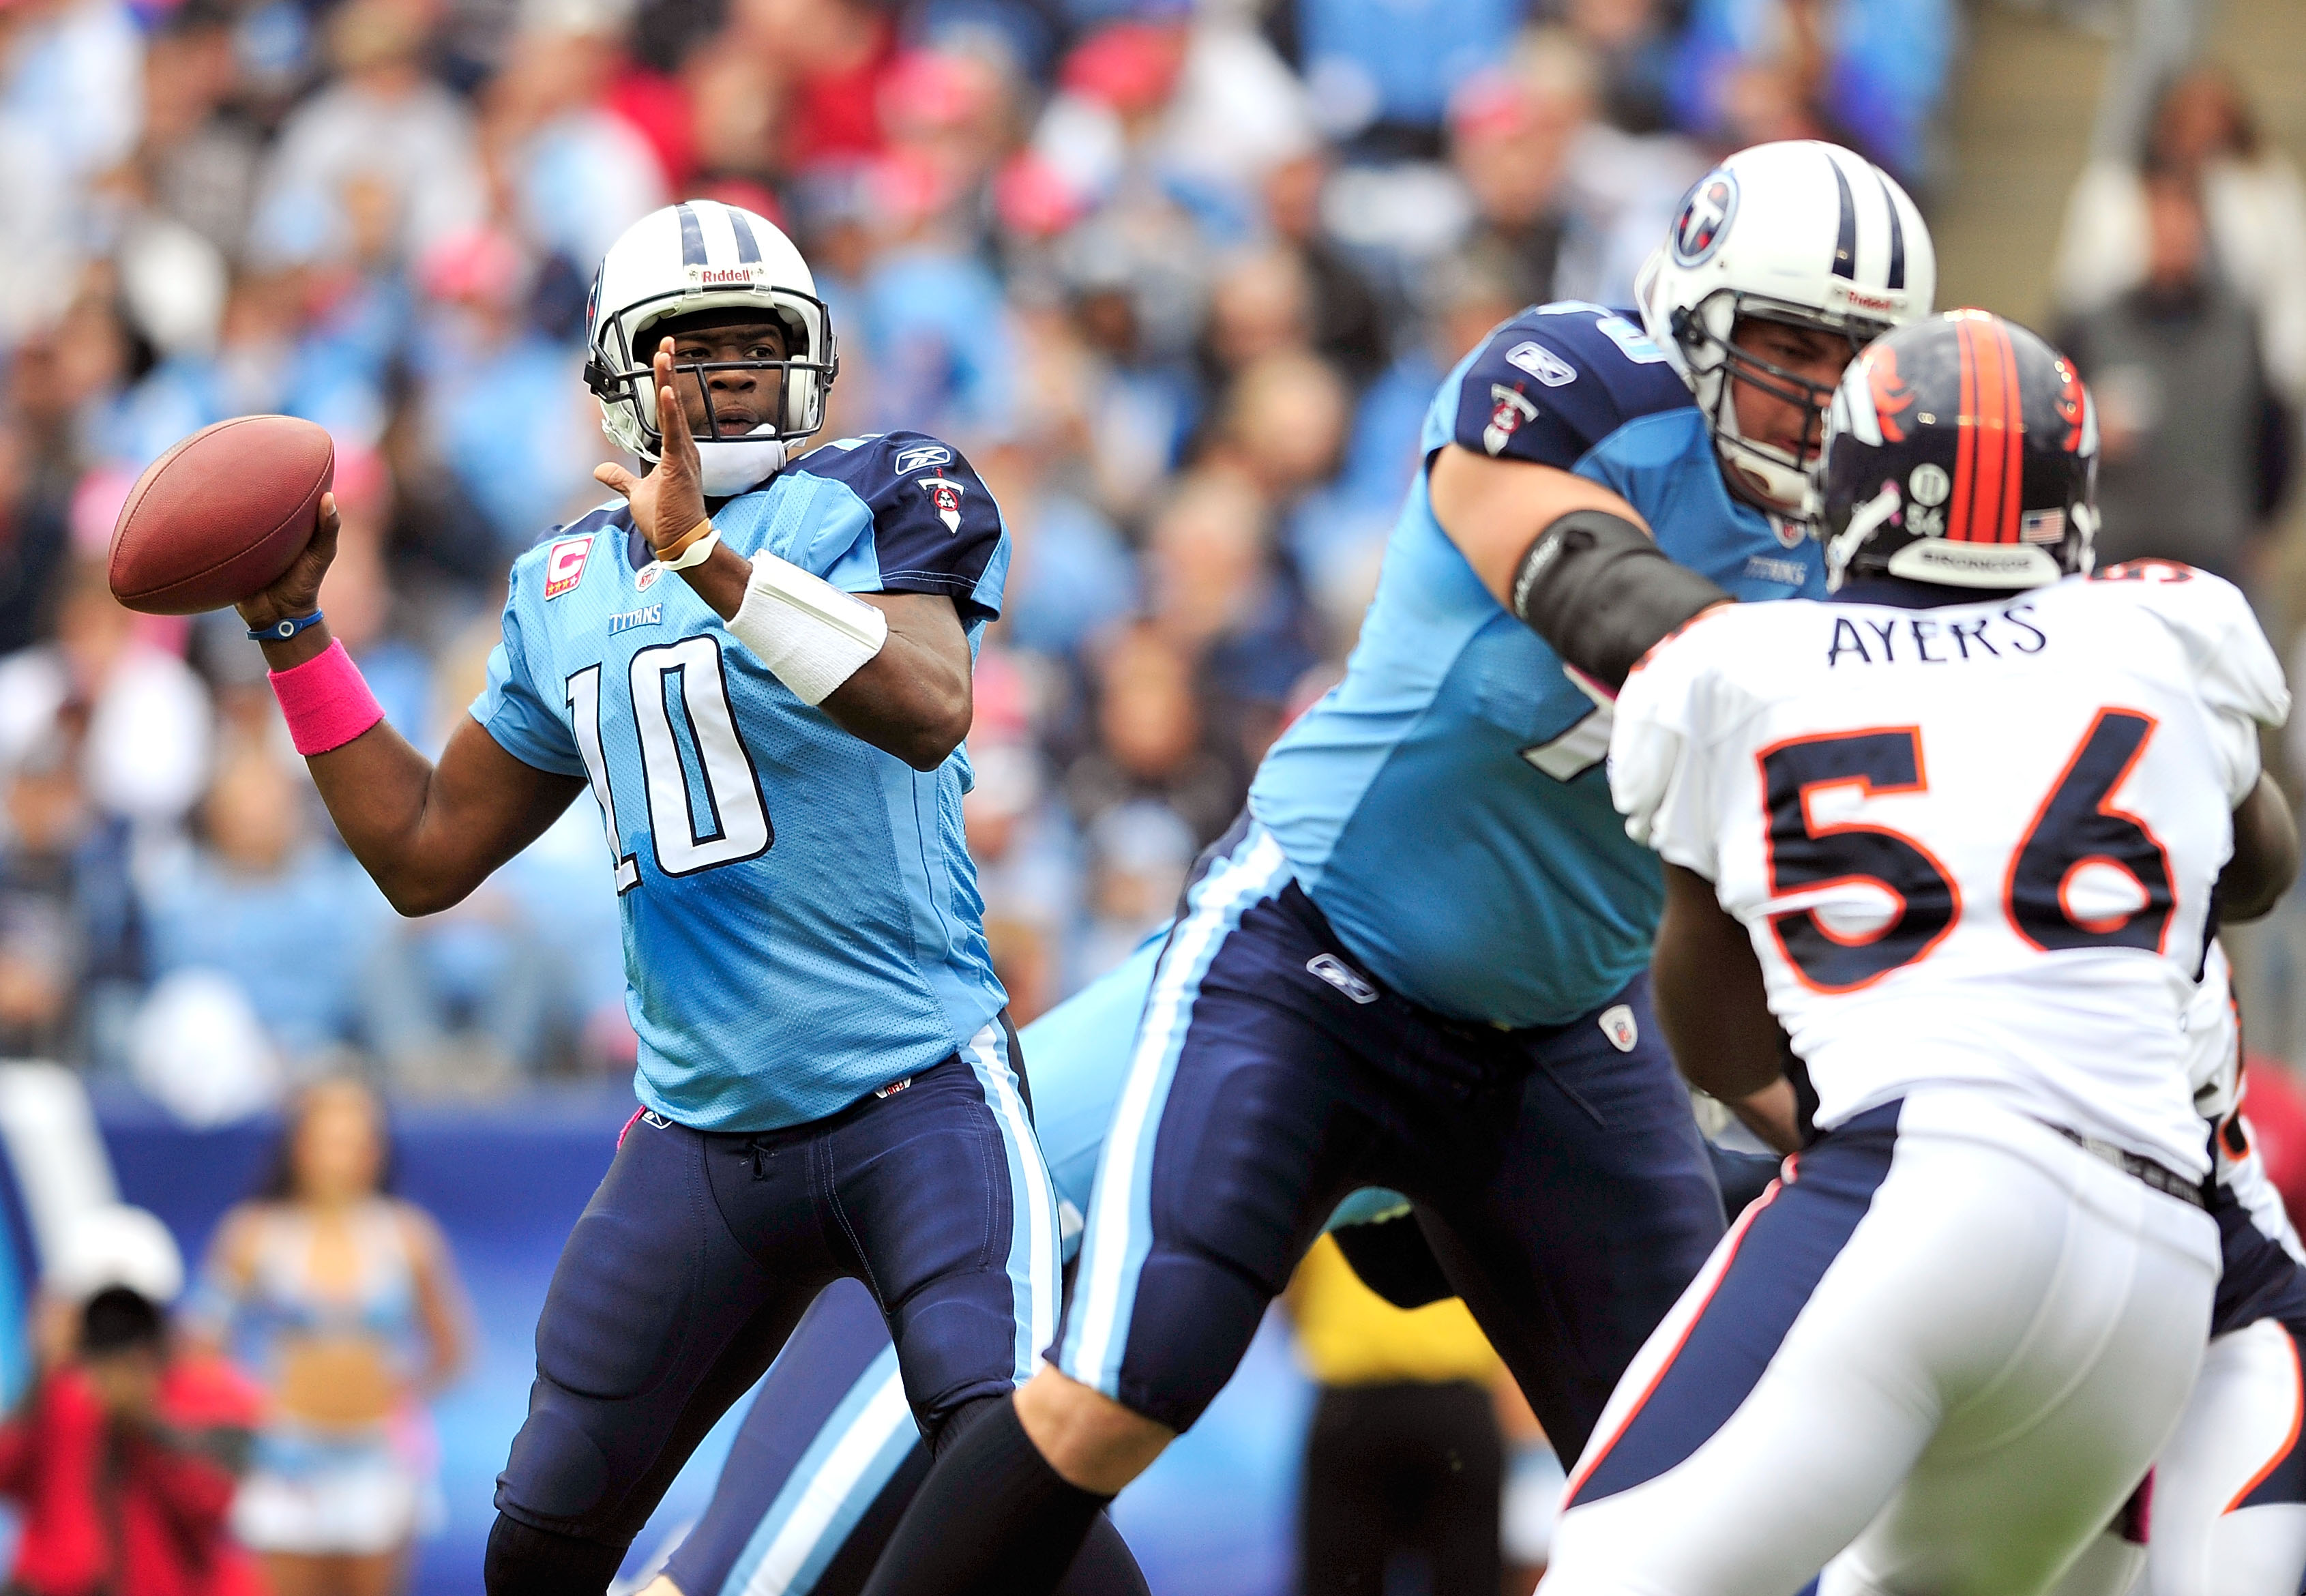 NASHVILLE, TN - OCTOBER 03:  Vince Young #10 of the Tennessee Titans drops back to pass against the Denver Broncos during the first half at LP Field on October 3, 2010 in Nashville, Tennessee.  (Photo by Grant Halverson/Getty Images)